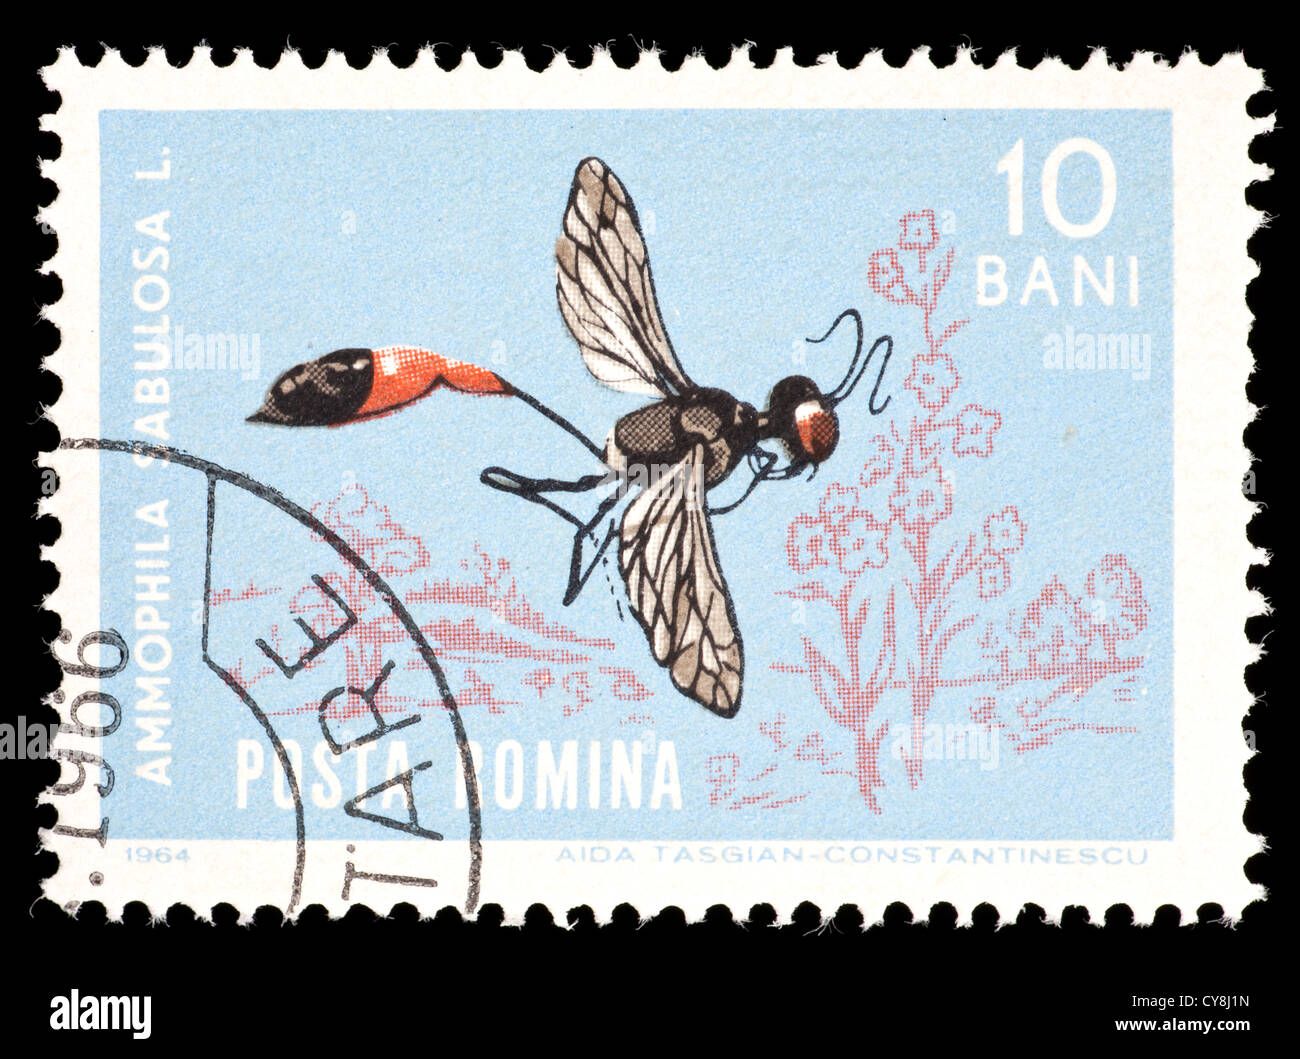 Postage stamp from Romania depicting a red-banded sand wasp (Ammophila sabulosa) Stock Photo